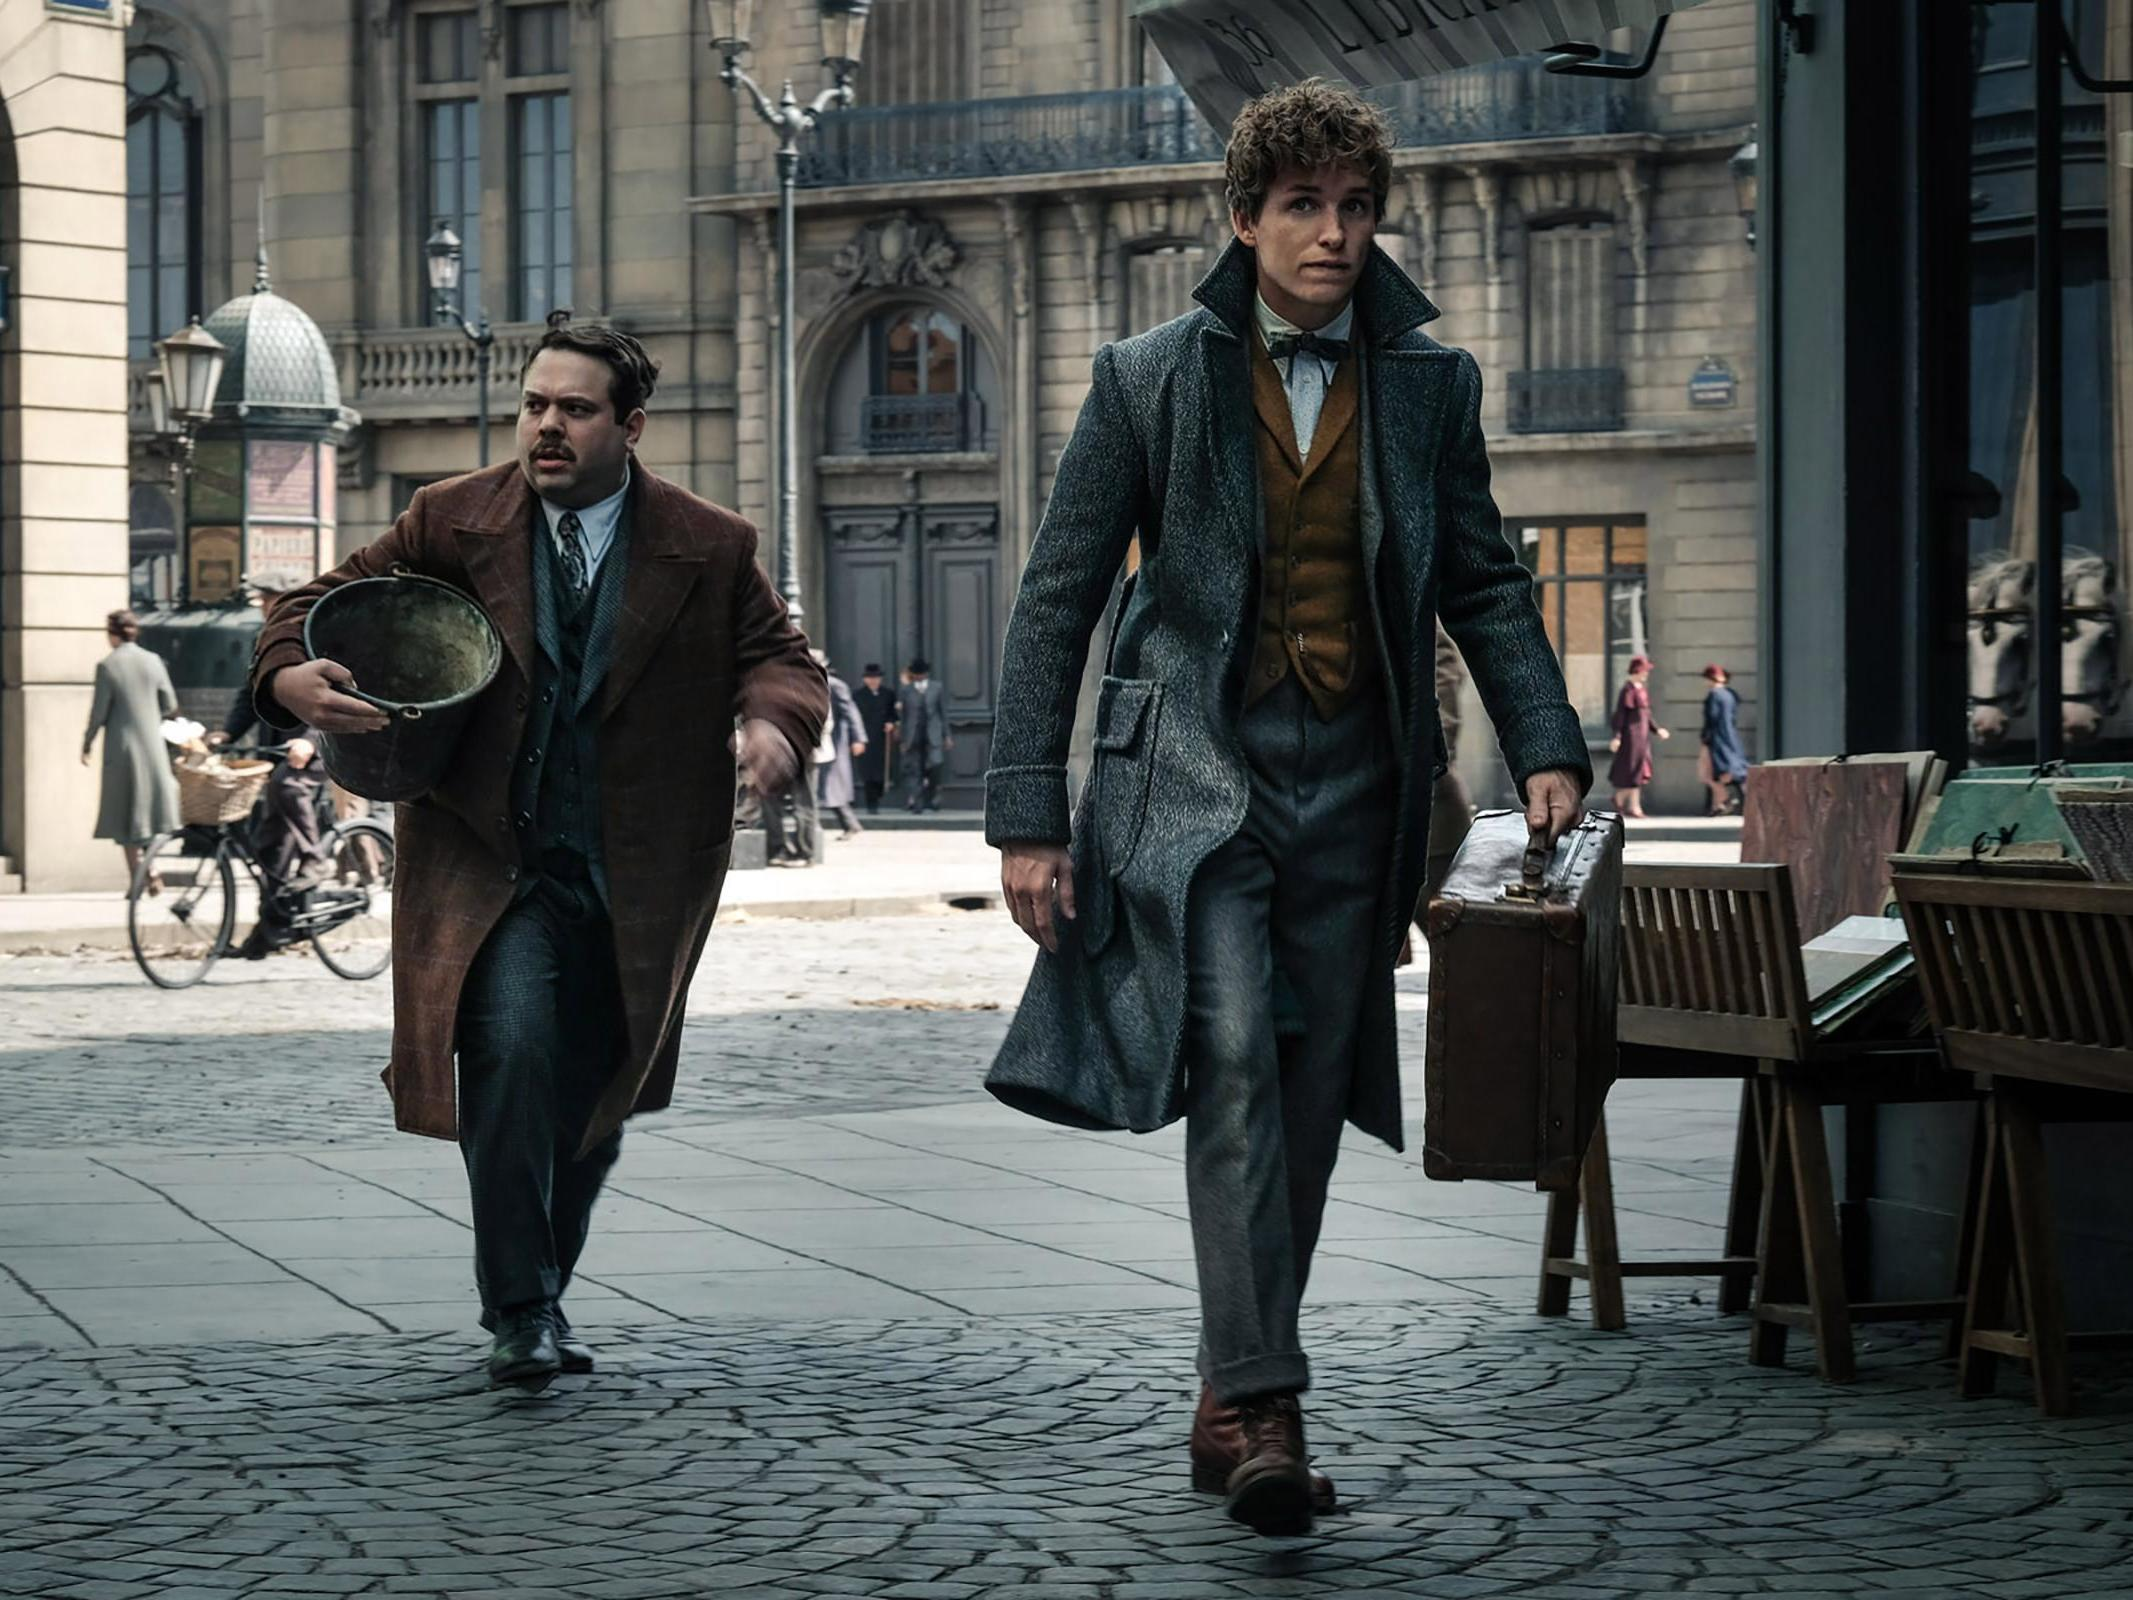 Fantastic Beasts: the Crimes of Grindelwald review – An astonishing level of visual detail and inventiveness